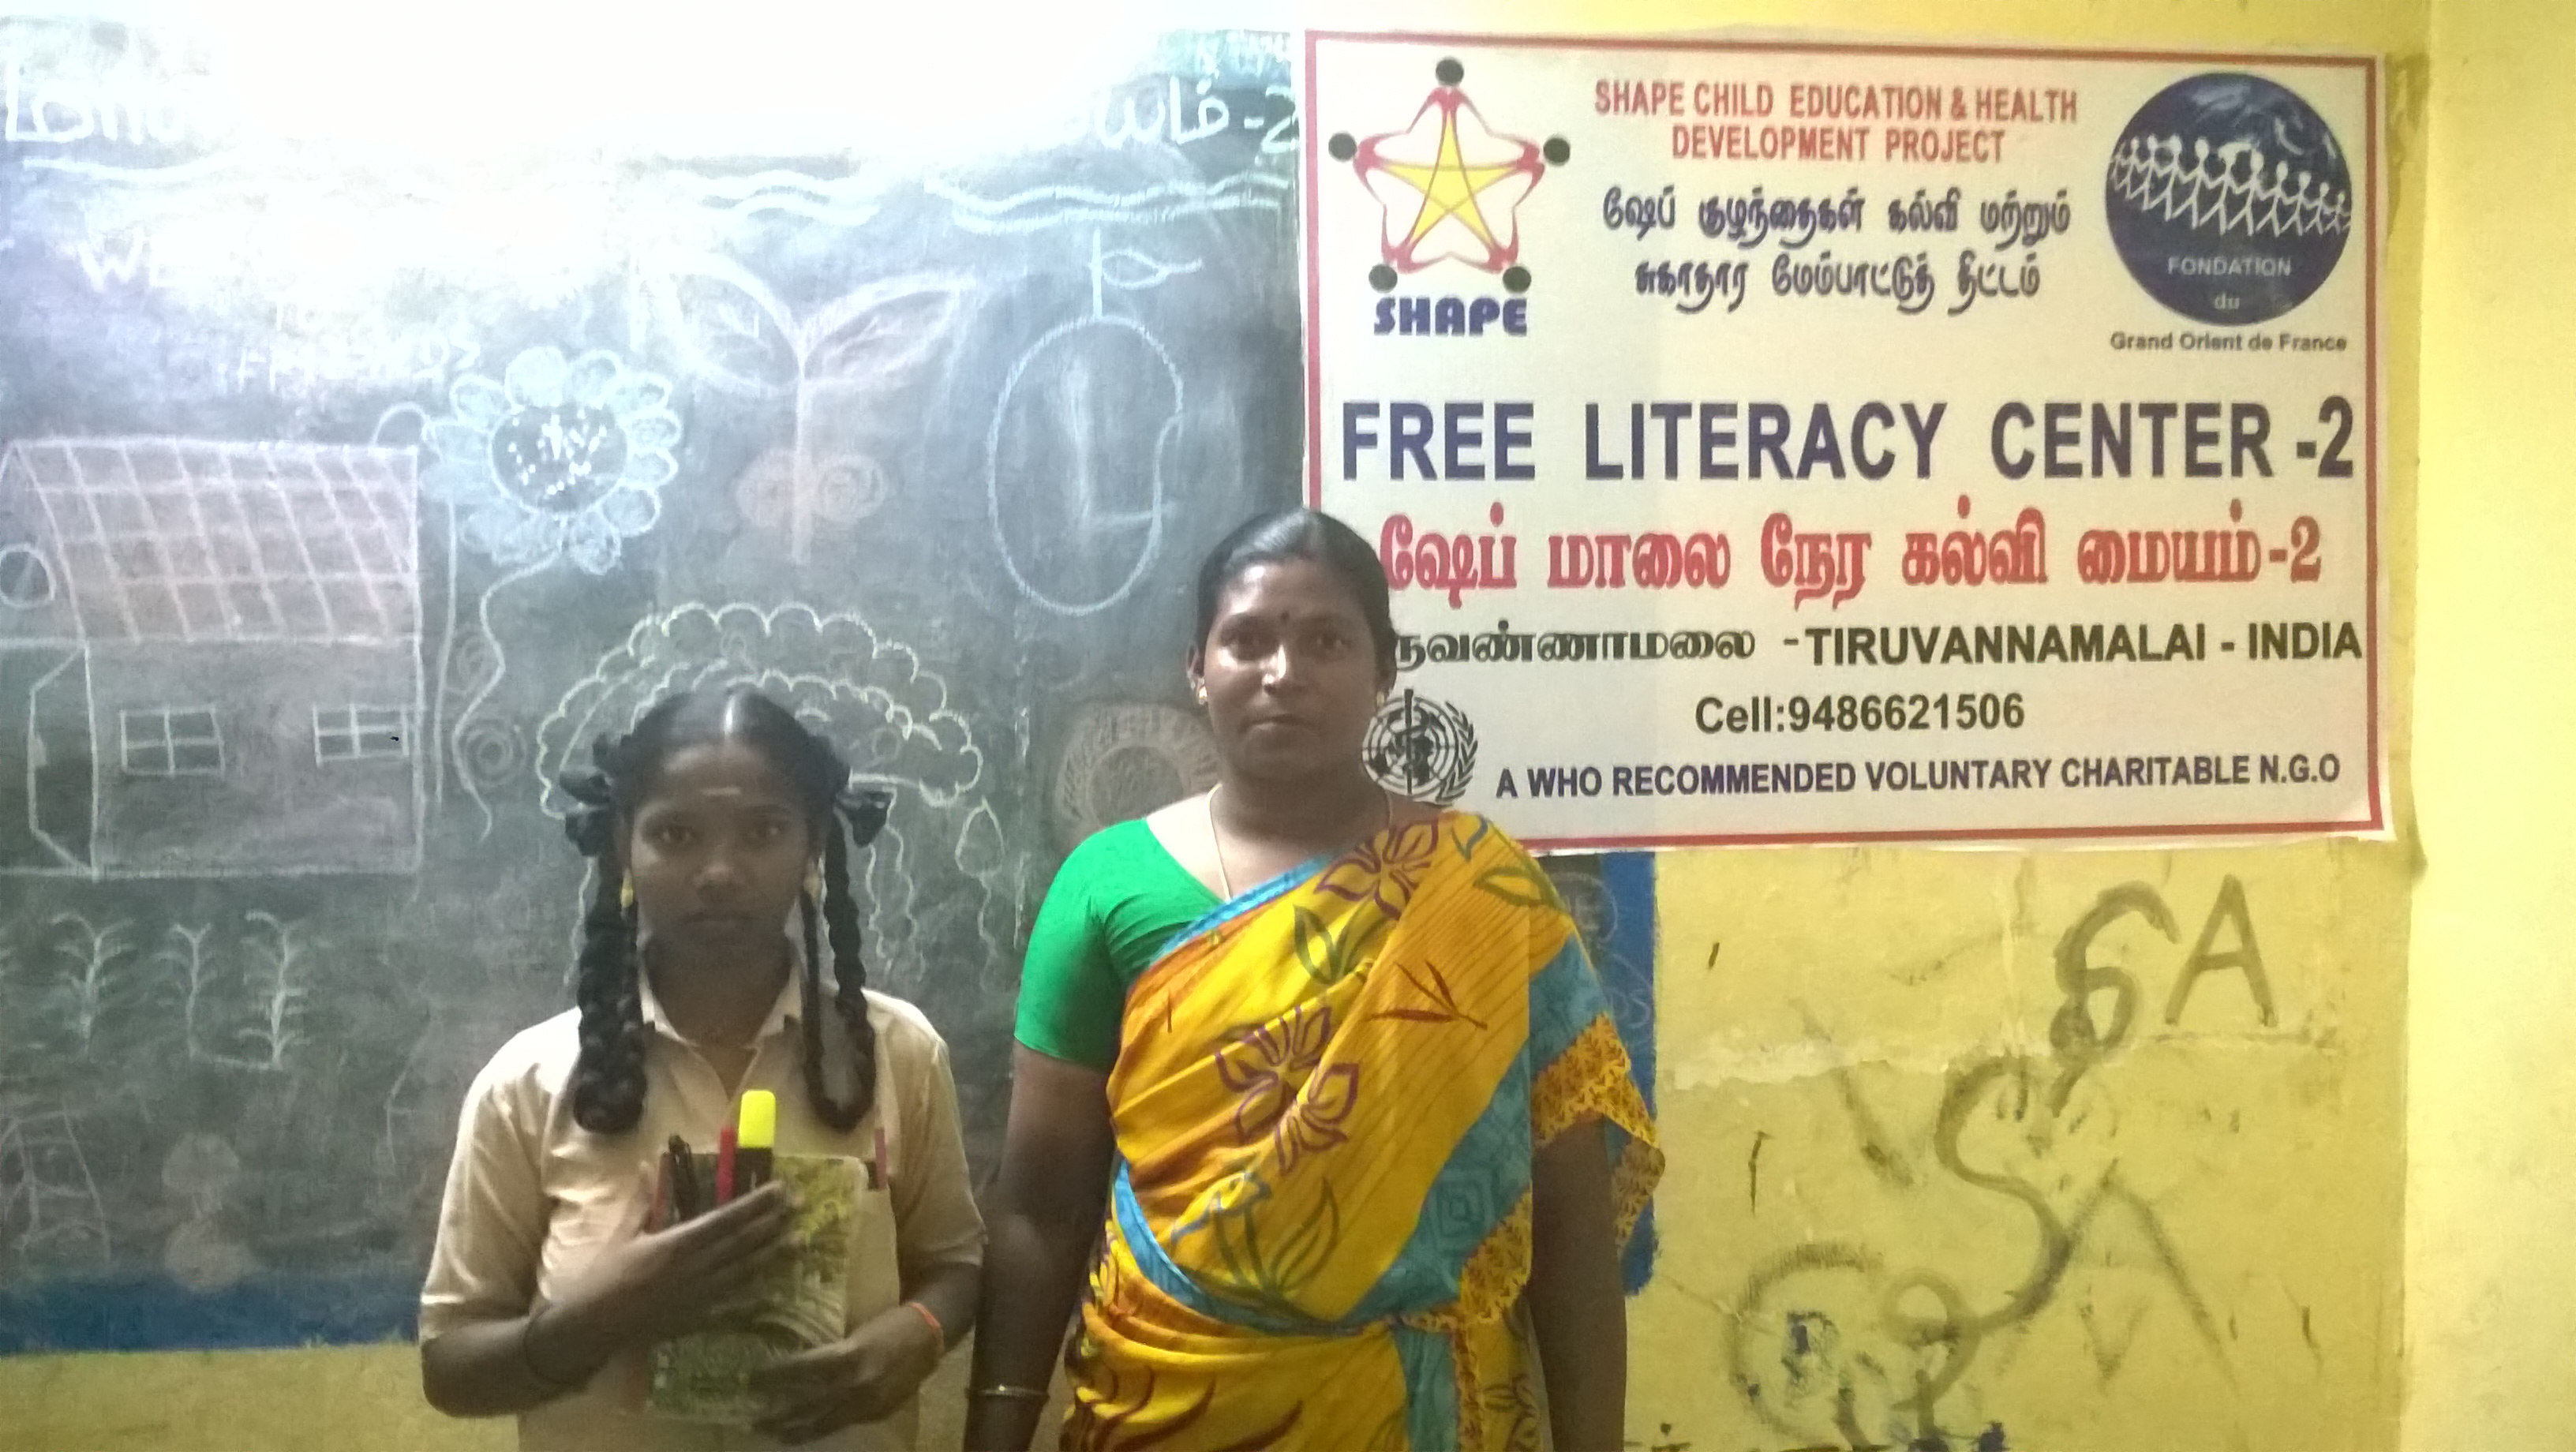 Support the holistic education of underprivileged children